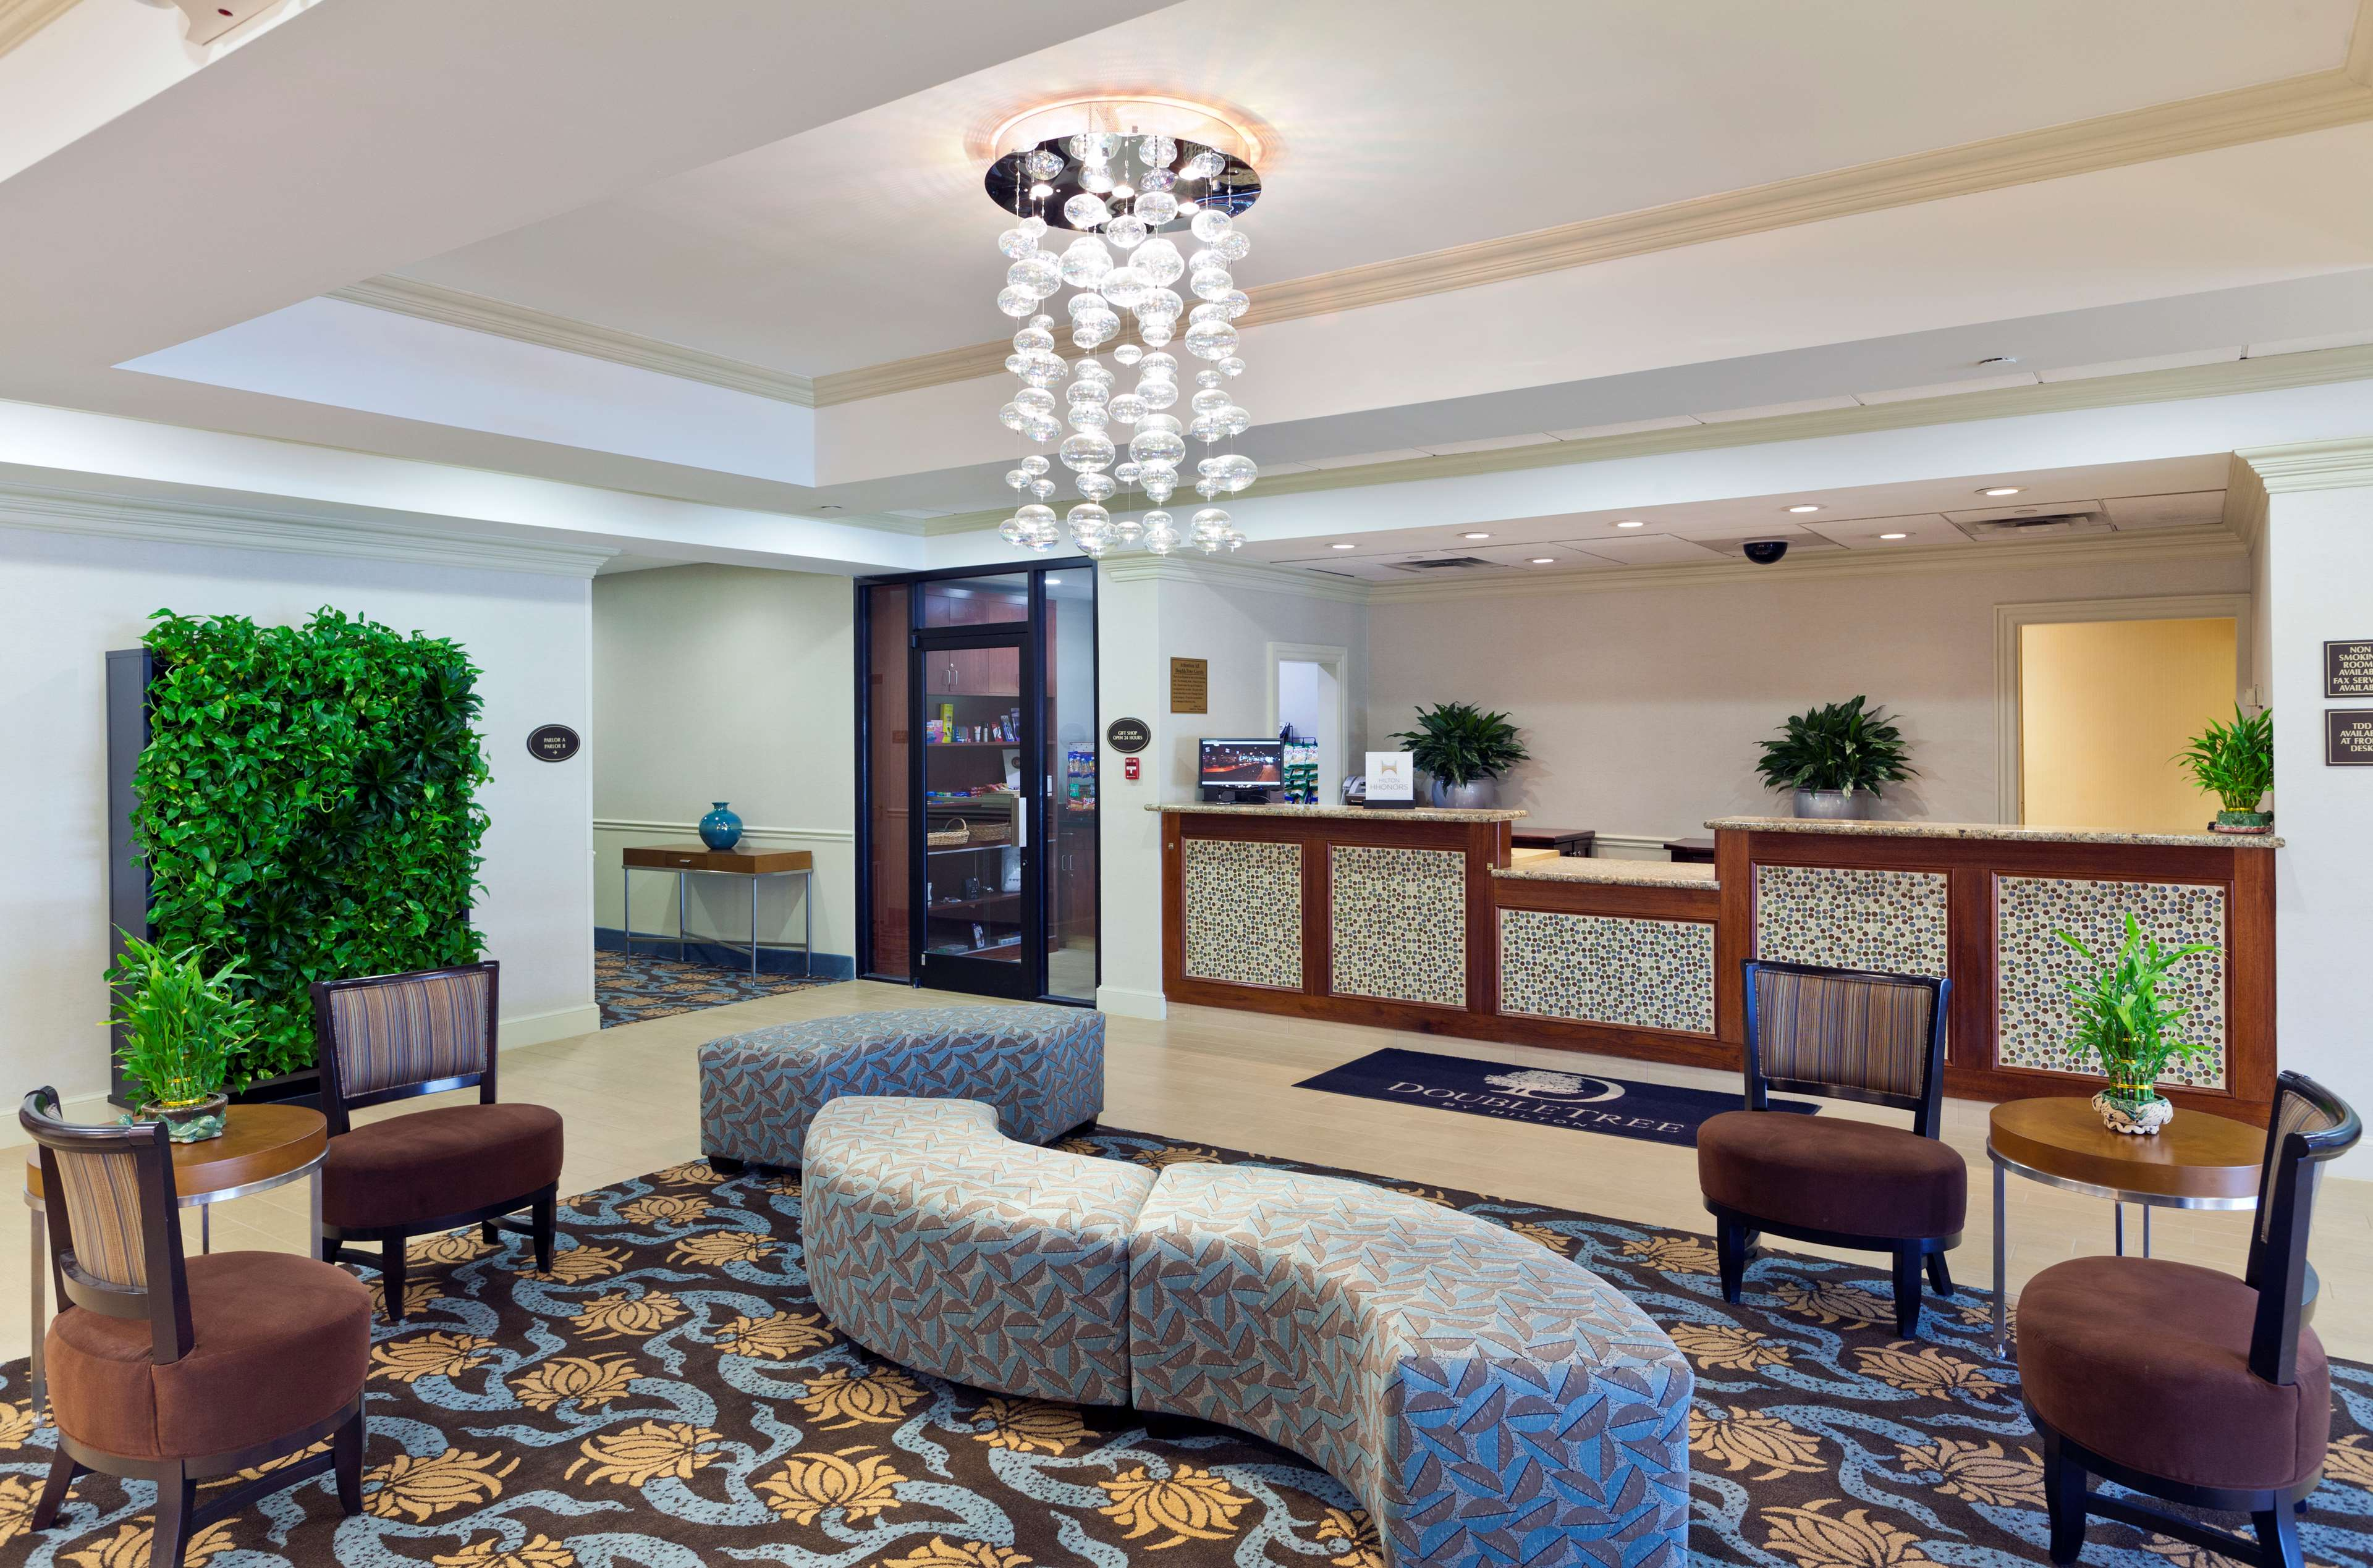 DoubleTree by Hilton Hotel Mahwah image 4